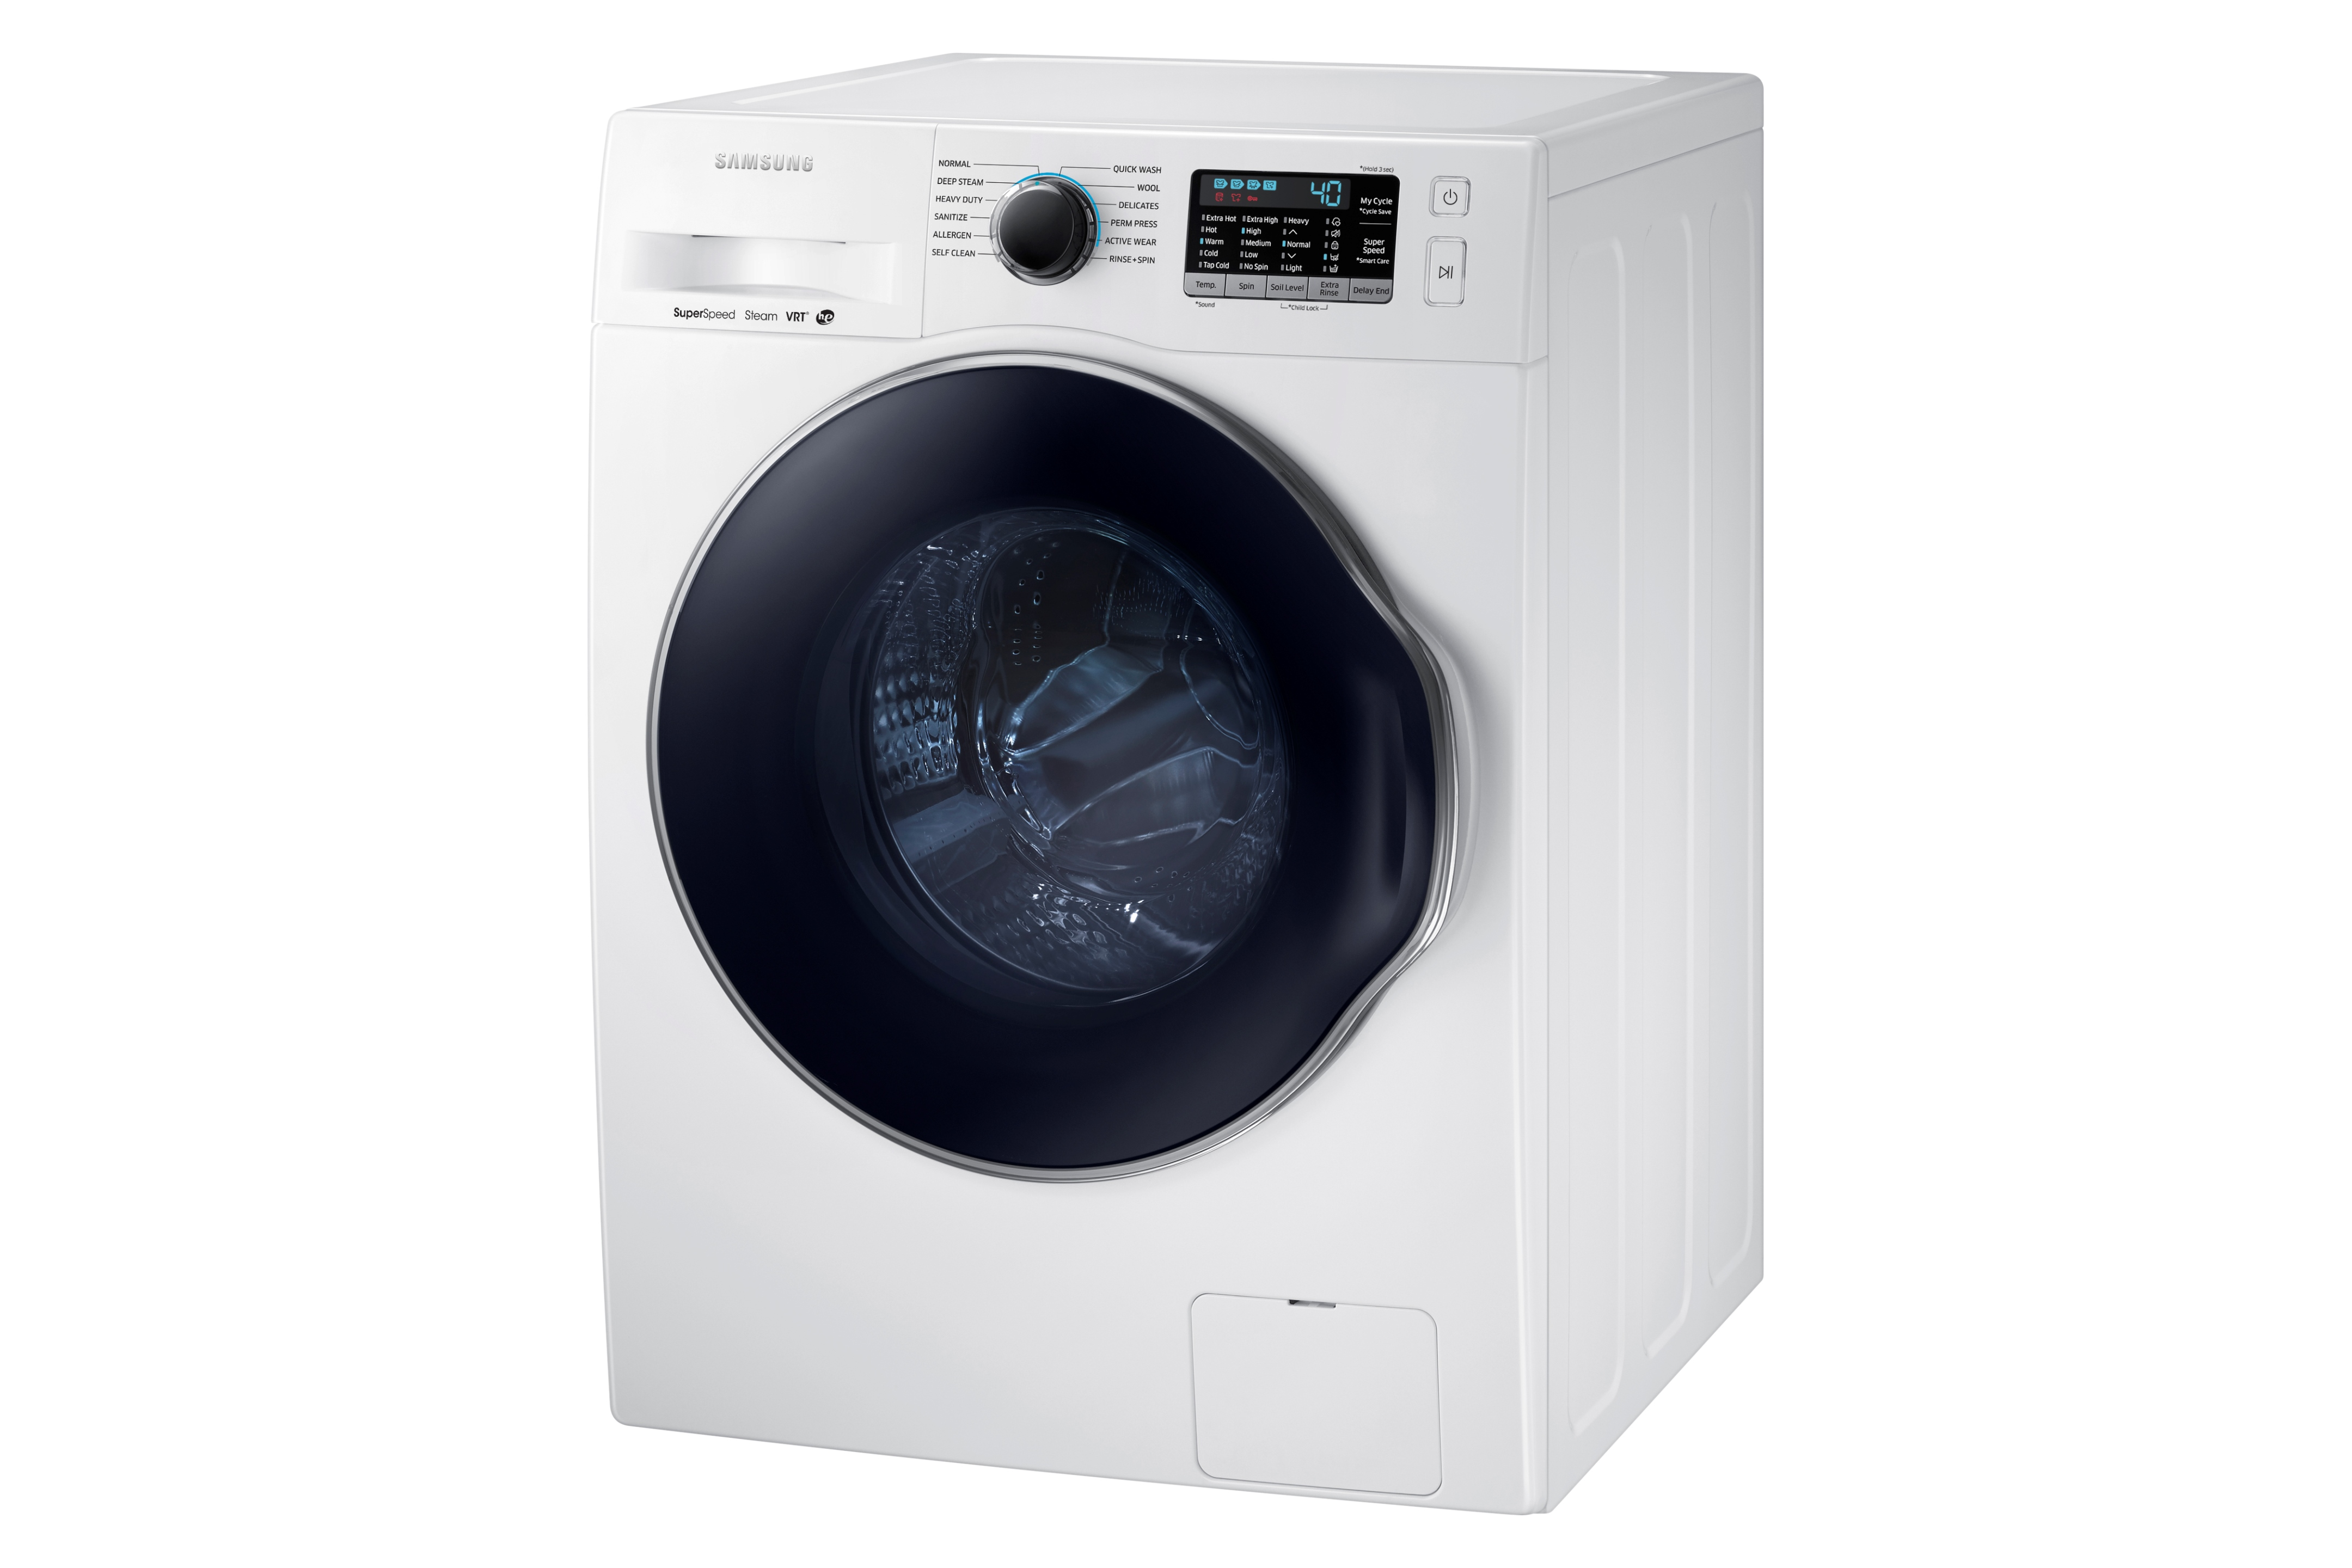 Samsung WW22K6800AW 2.2 cu. ft. Front Load Washer with Super Speed White